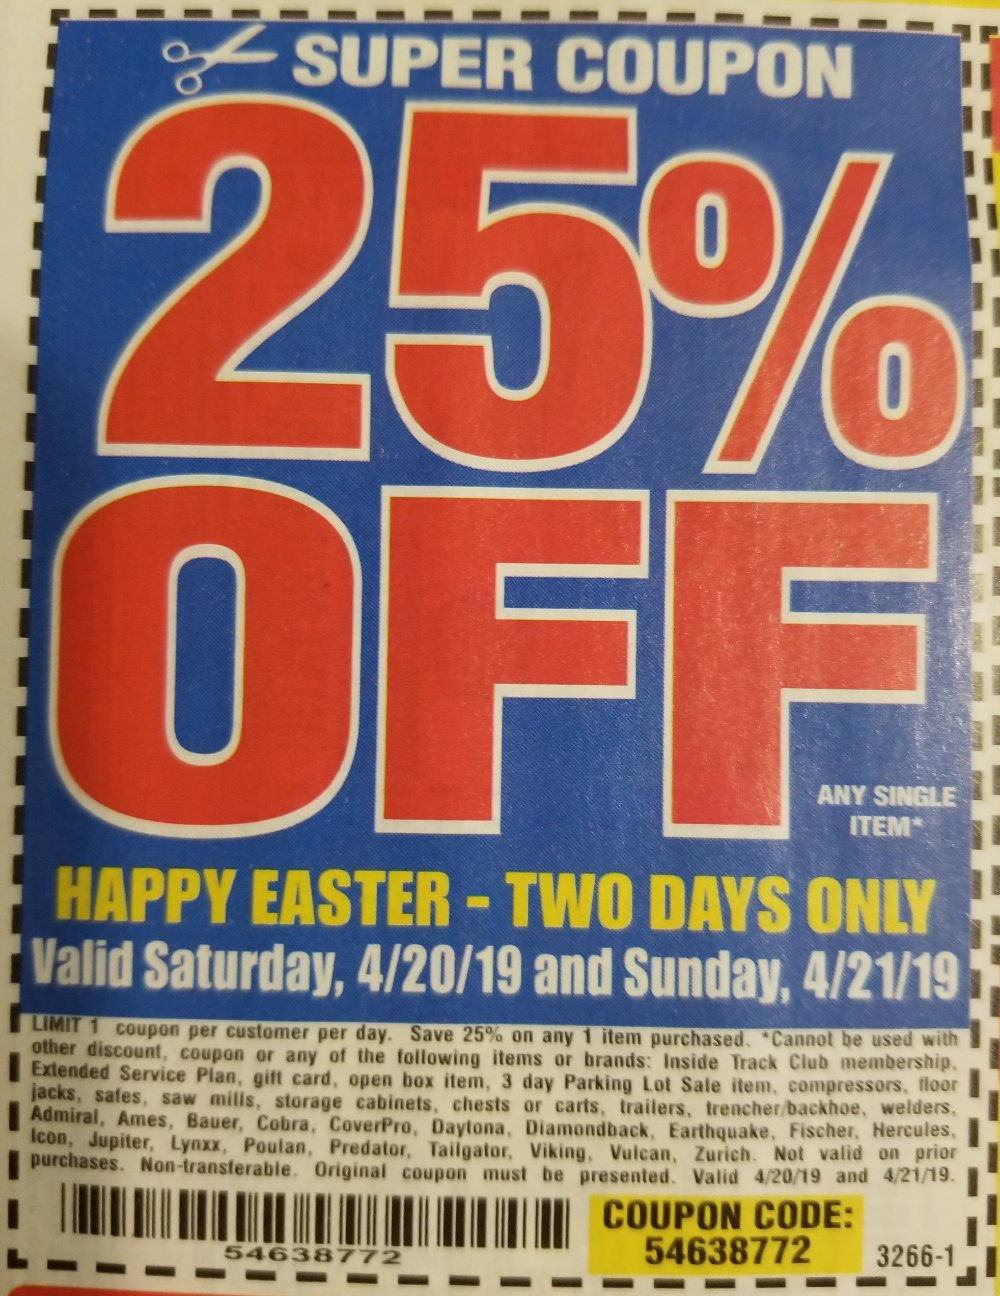 Harbor Freight Coupon, HF Coupons - 25% Off Single Item